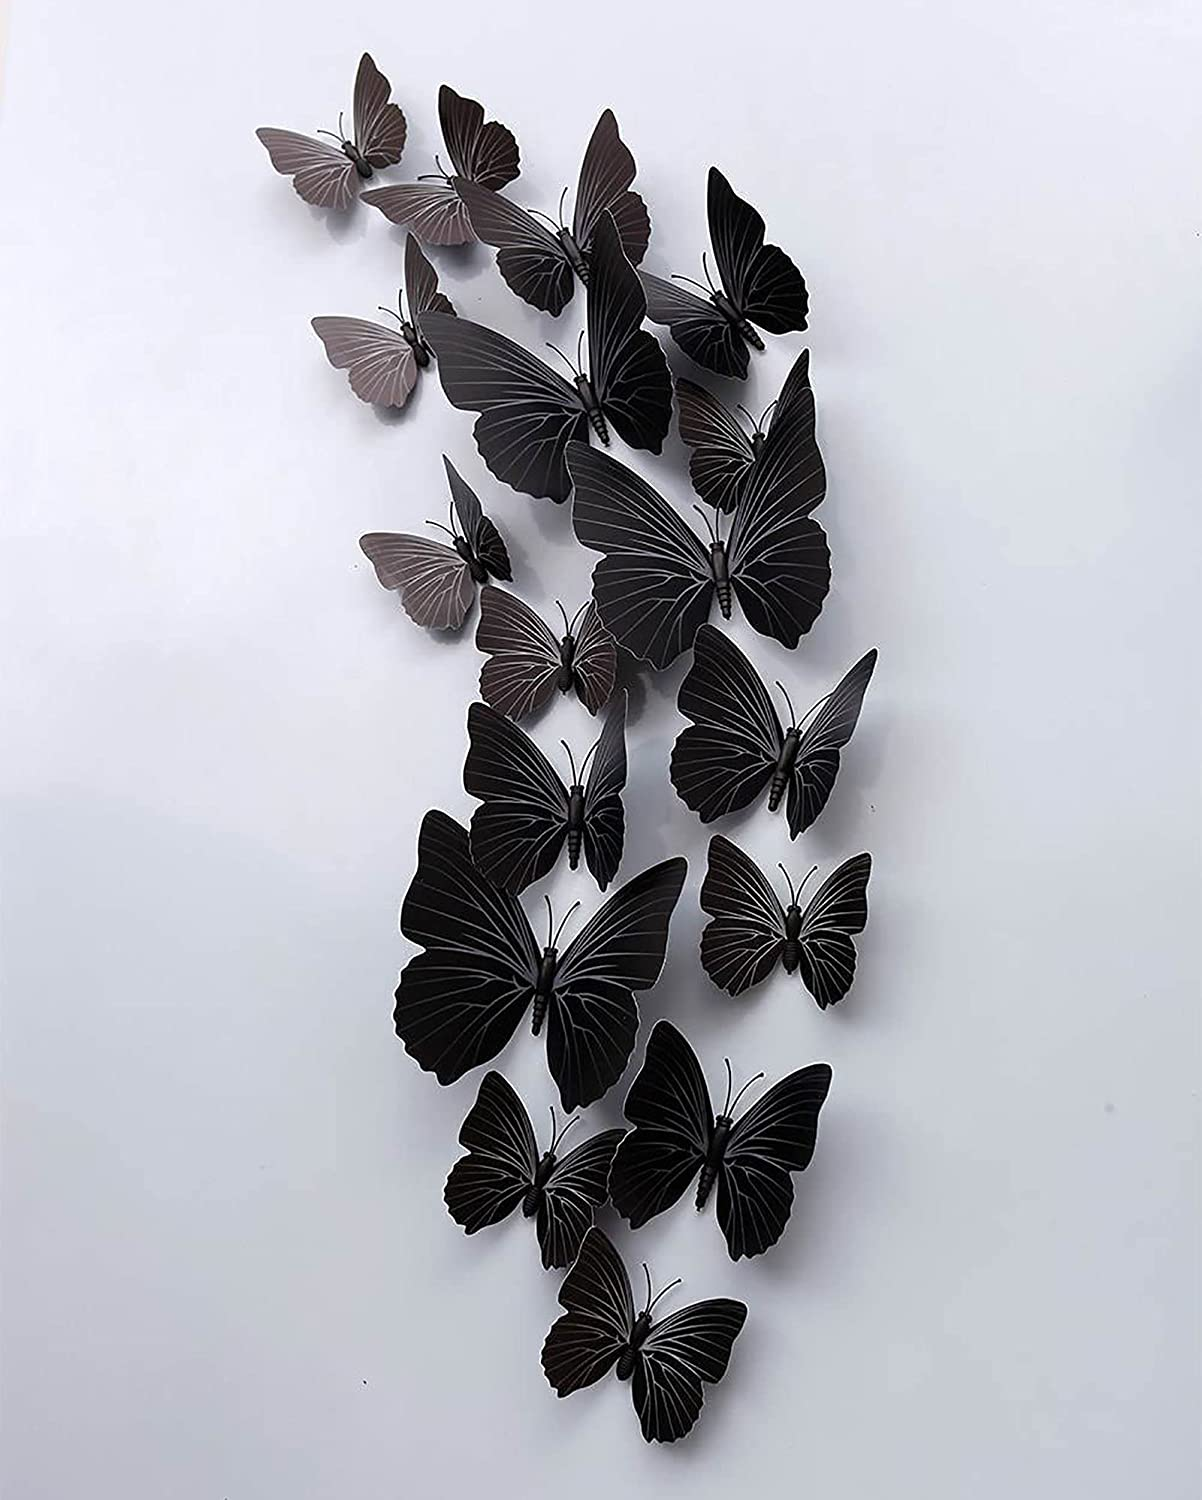 3D Butterfly Wall Decor, 24PCS Black Butterfly Black Wall Decor, PVC Butterfly Stickers with Magnet, Removable Butterfly Wall Decals for Home Nursery Kids Bedroom Decorations